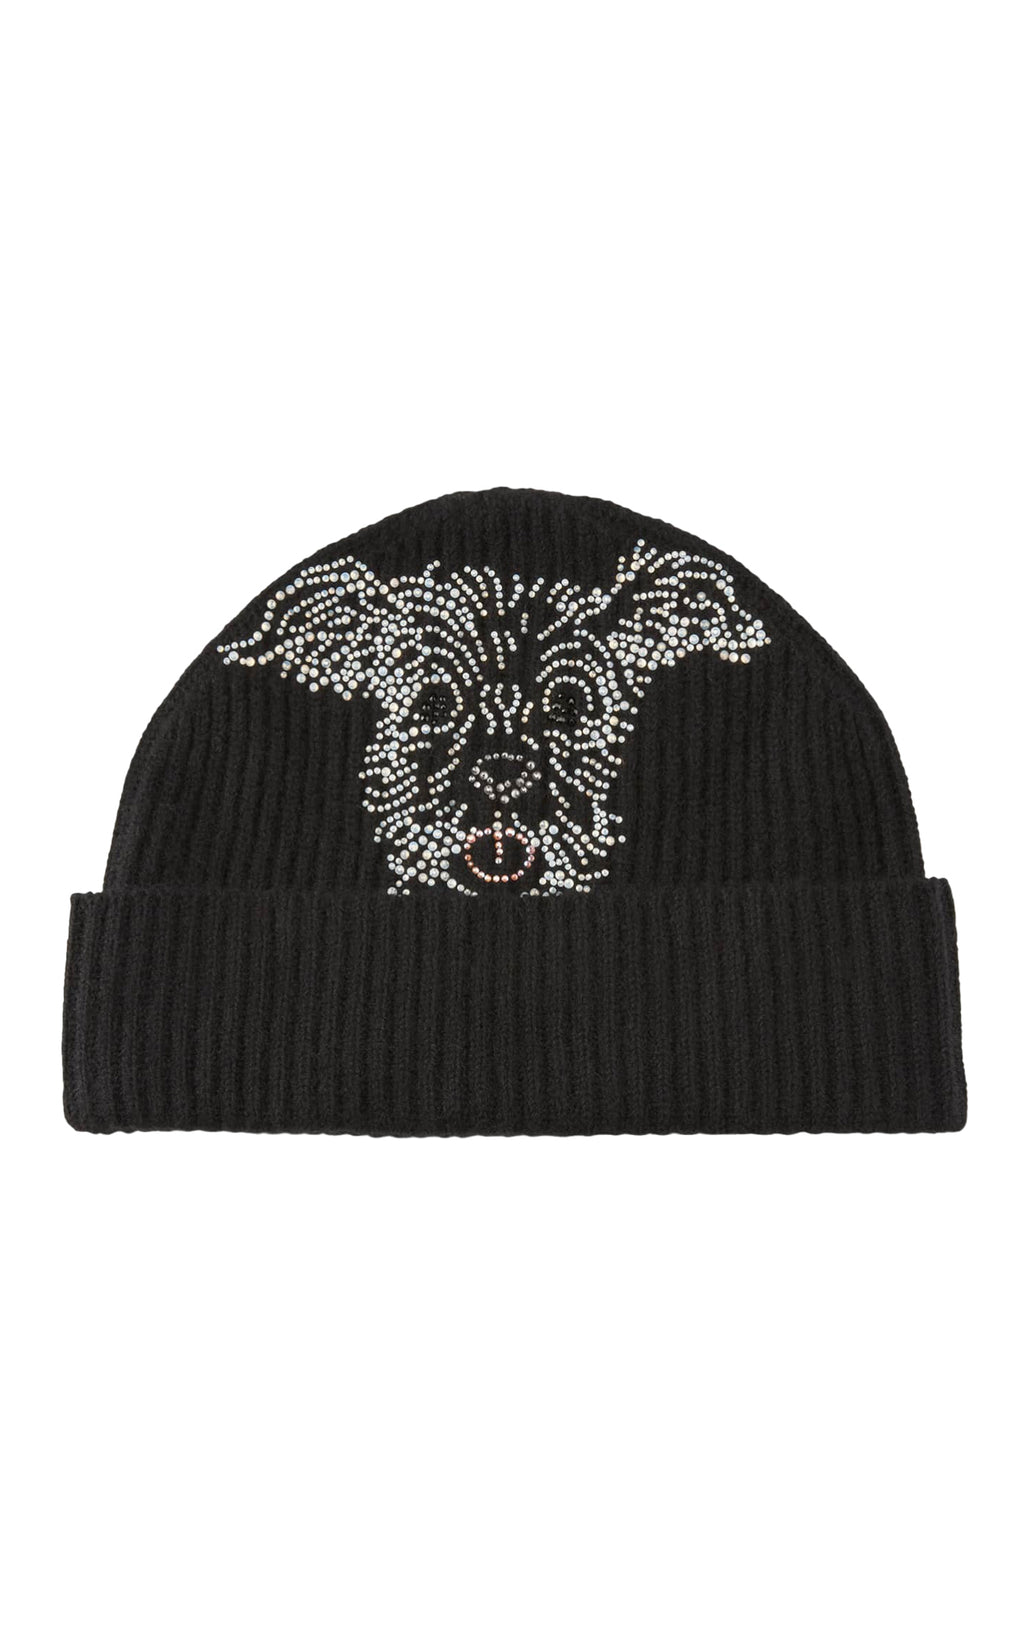 'Ruby Tuesday' Beanie - Accessories - Libertine